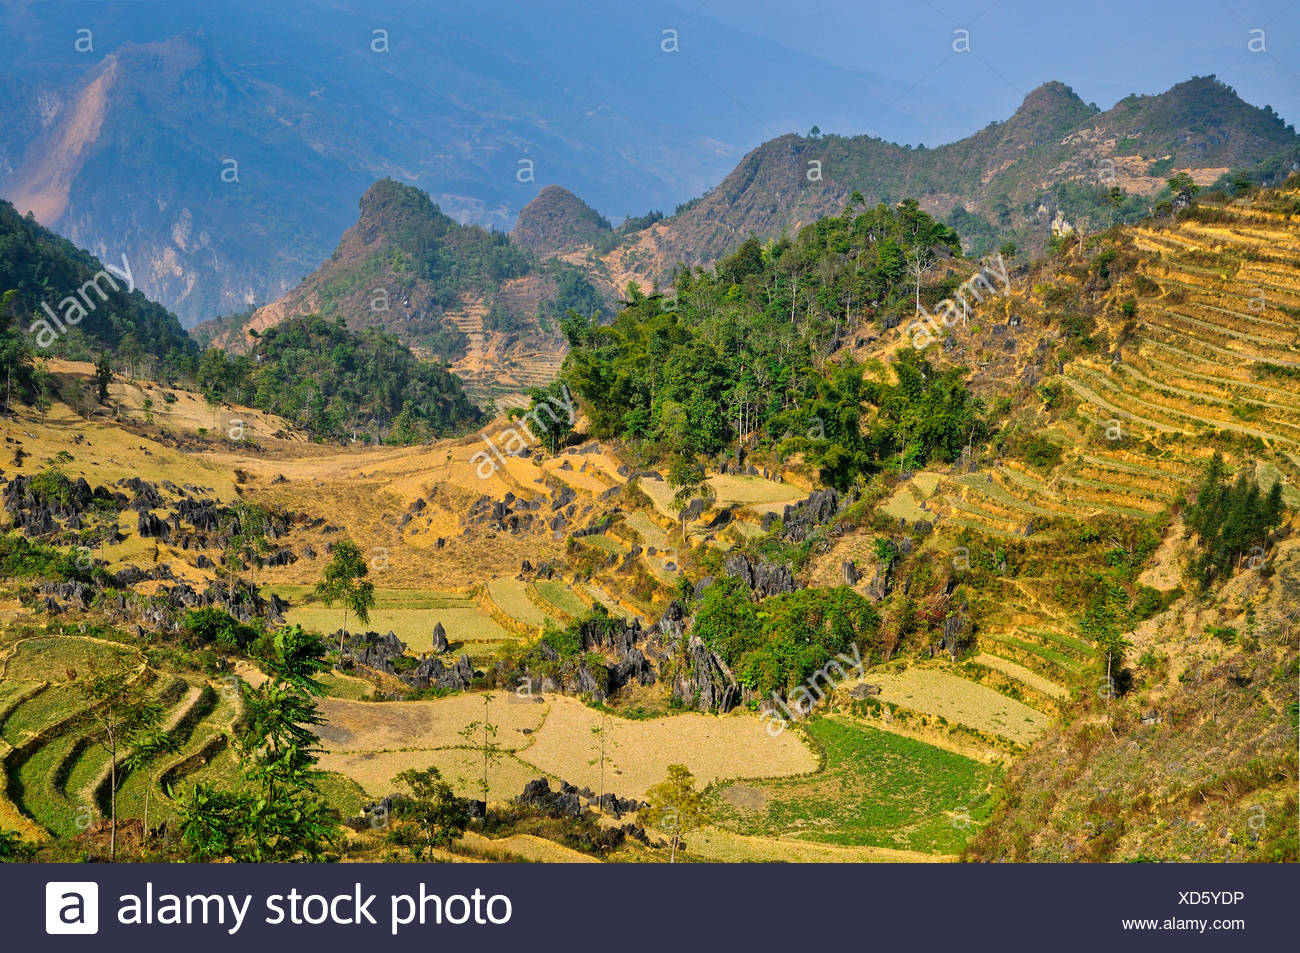 Mountain landscape with rice fields, Si Ma Cai District, Vietnam, Asia - Stock Image